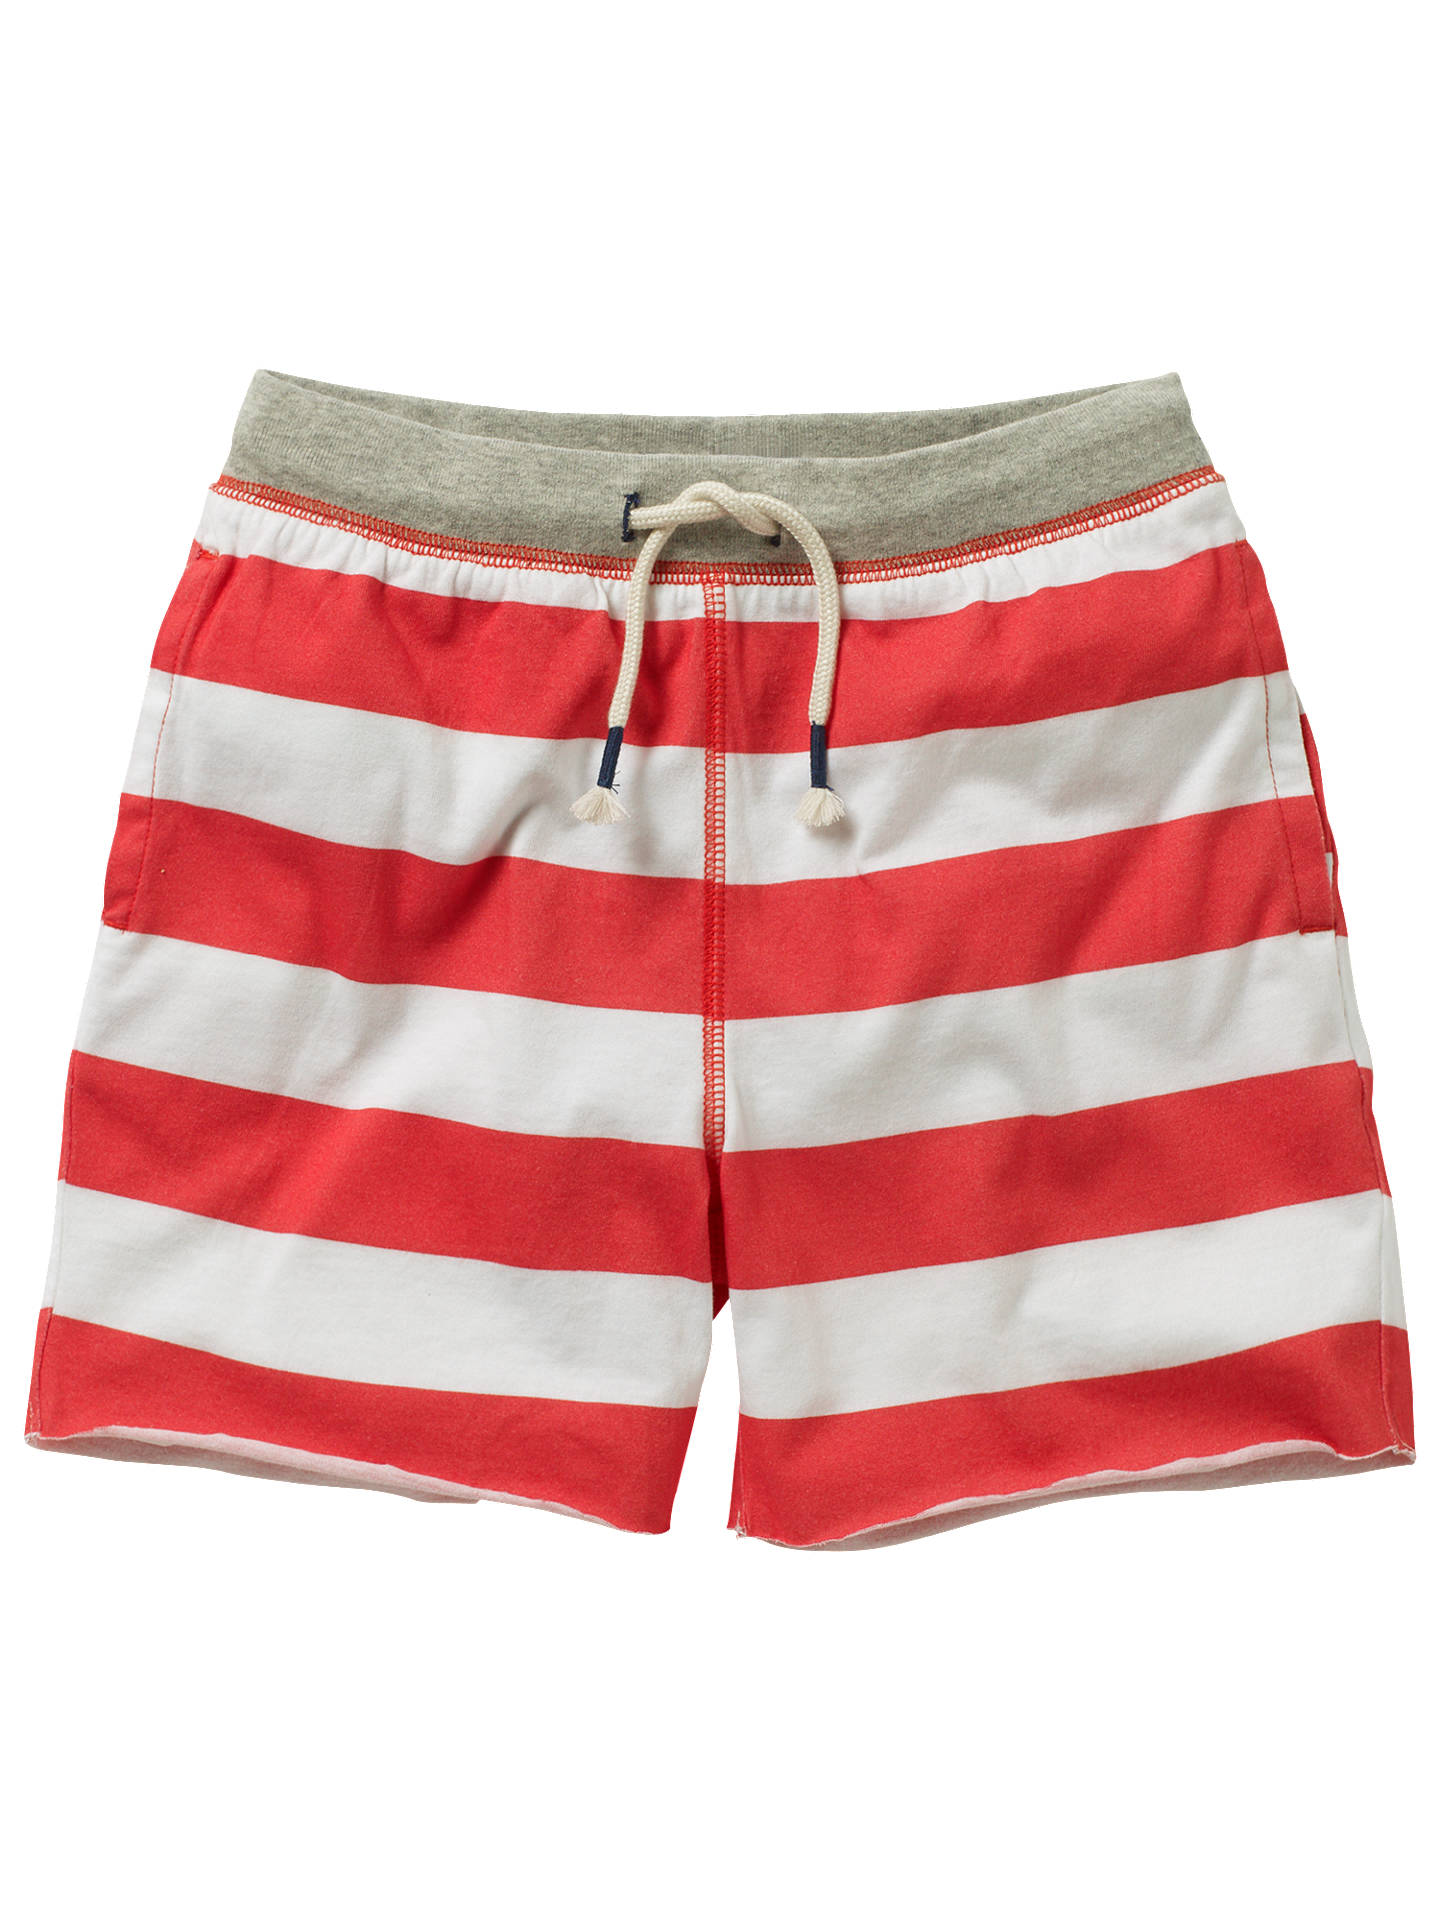 Mini Boden Boys Slub Sweat Shorts Red 3 Years Online At Johnlewis